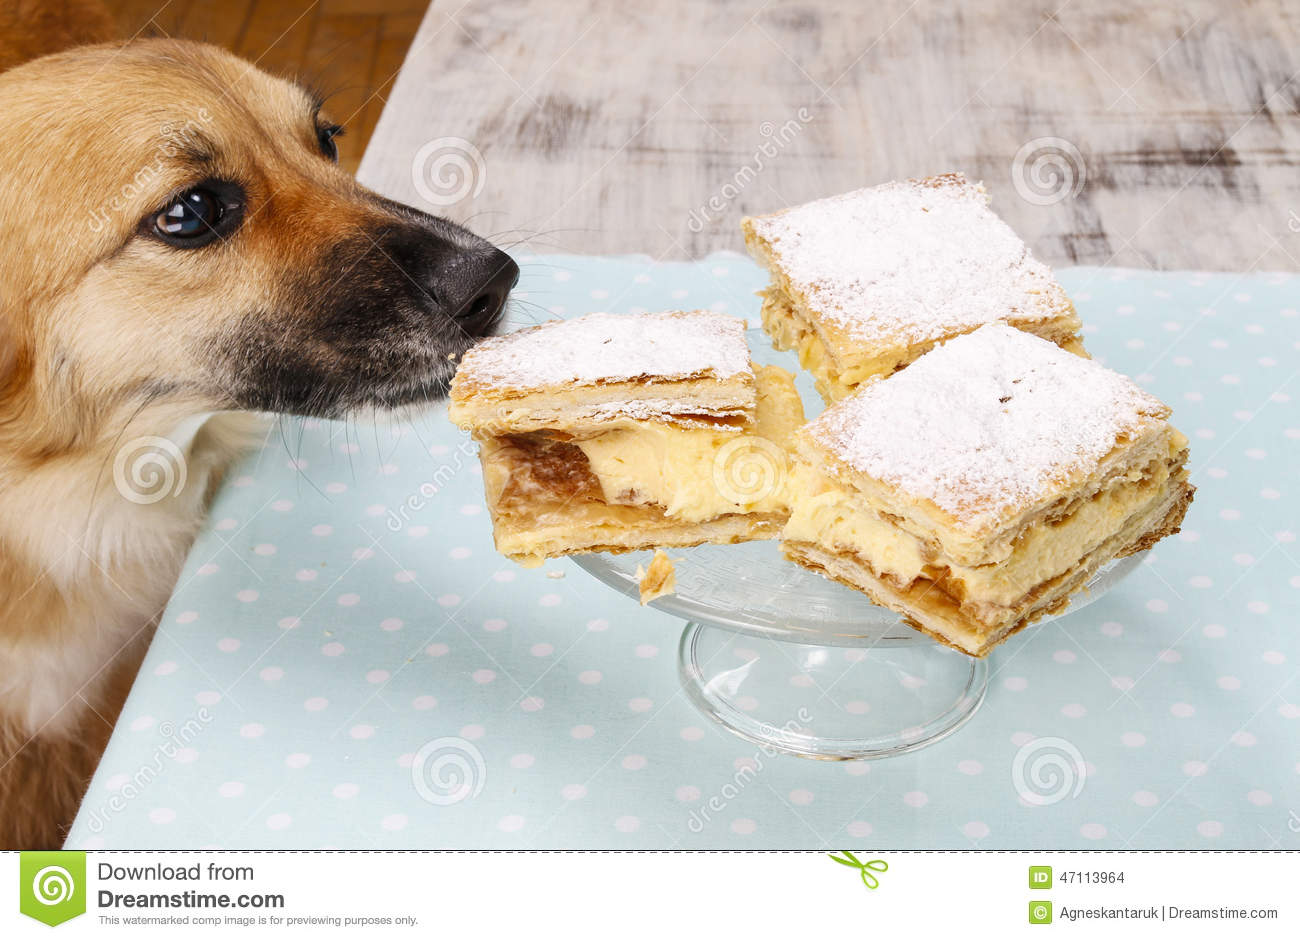 Dog stealing birthday cake - photo#39